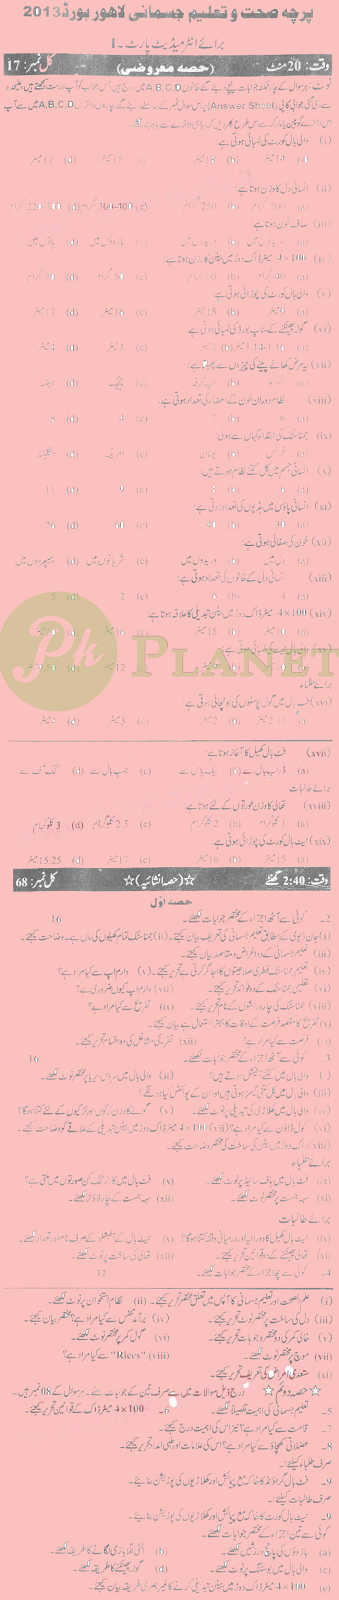 Intermediate Part 1 Past Papers Lahore Board Health Education 2013